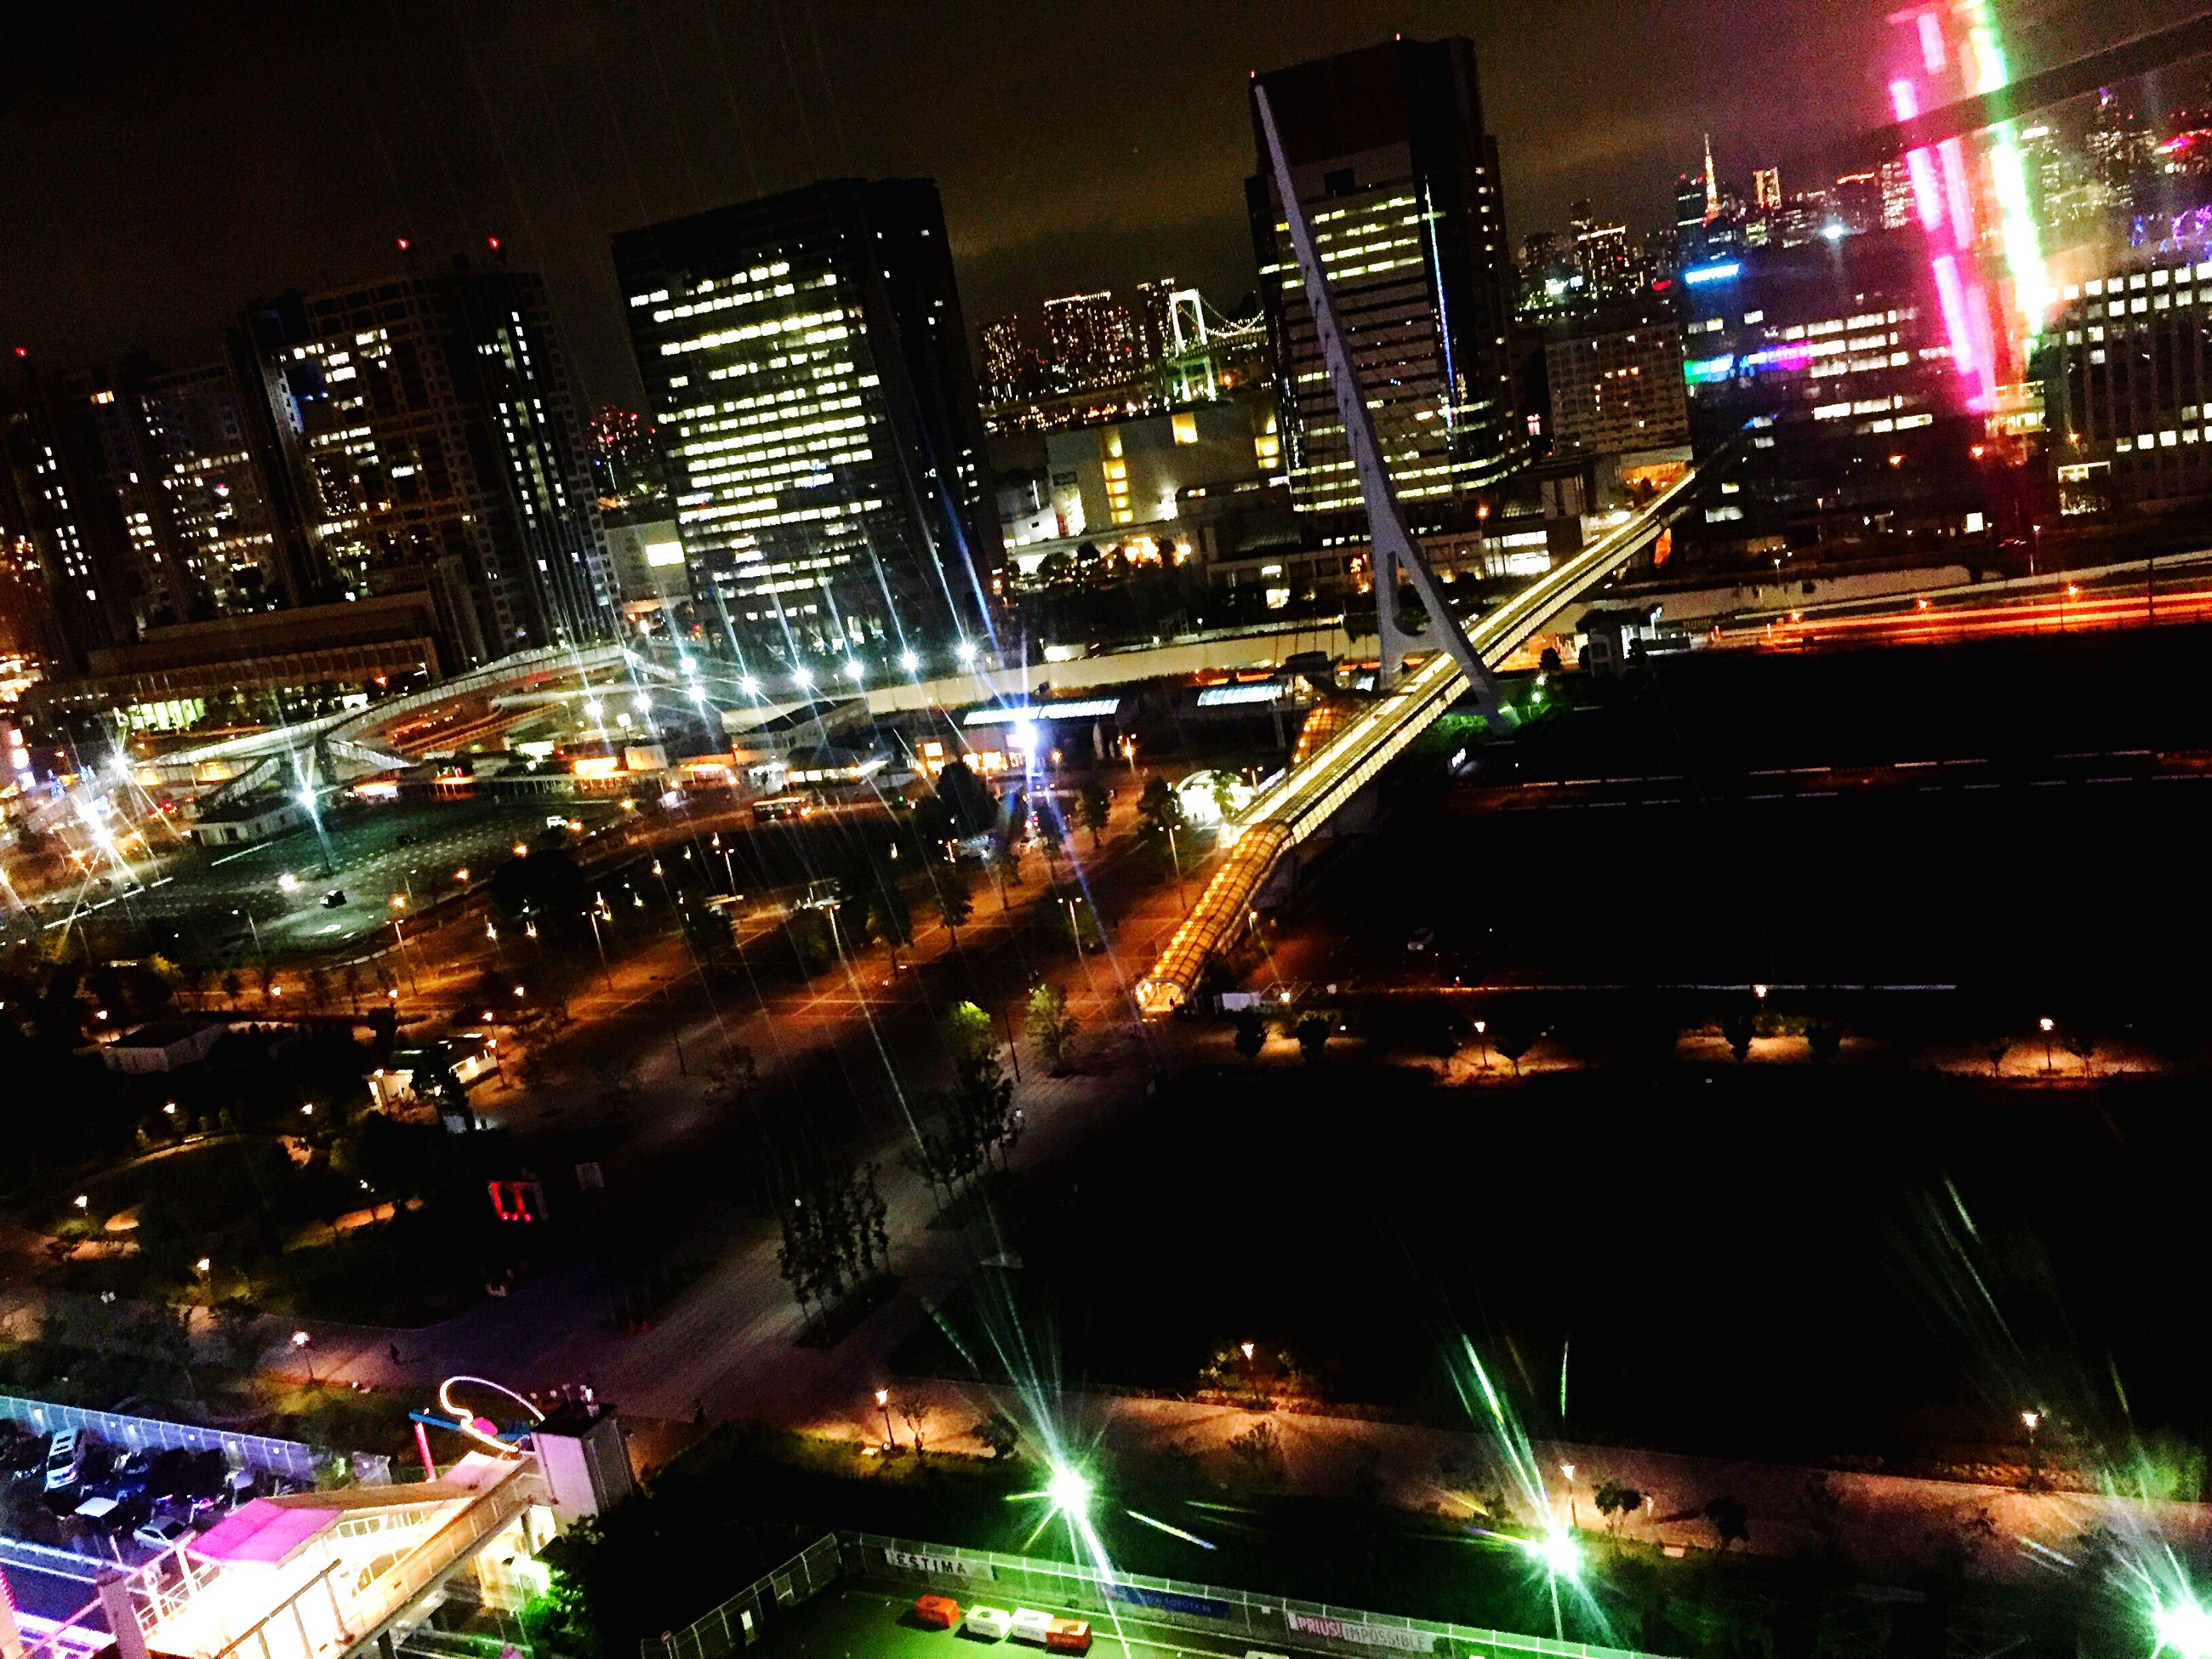 illuminated, night, city, architecture, building exterior, built structure, cityscape, city life, skyscraper, modern, outdoors, travel destinations, no people, road, transportation, motion, urban skyline, high street, sky